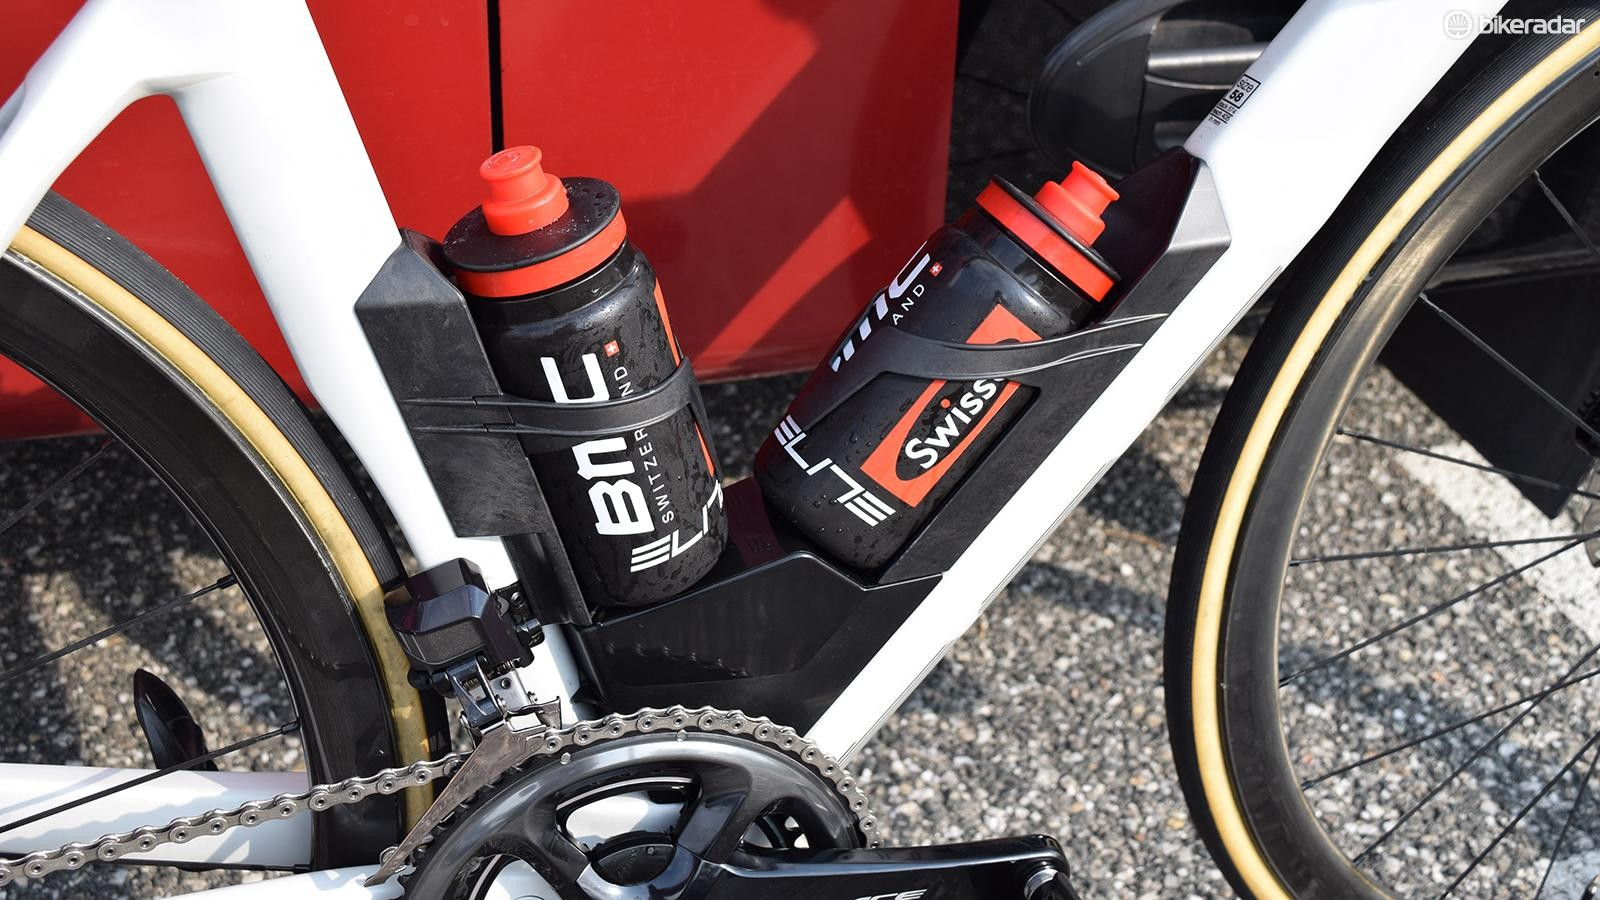 BMC say the bottle cage system is faster with bottles in than without